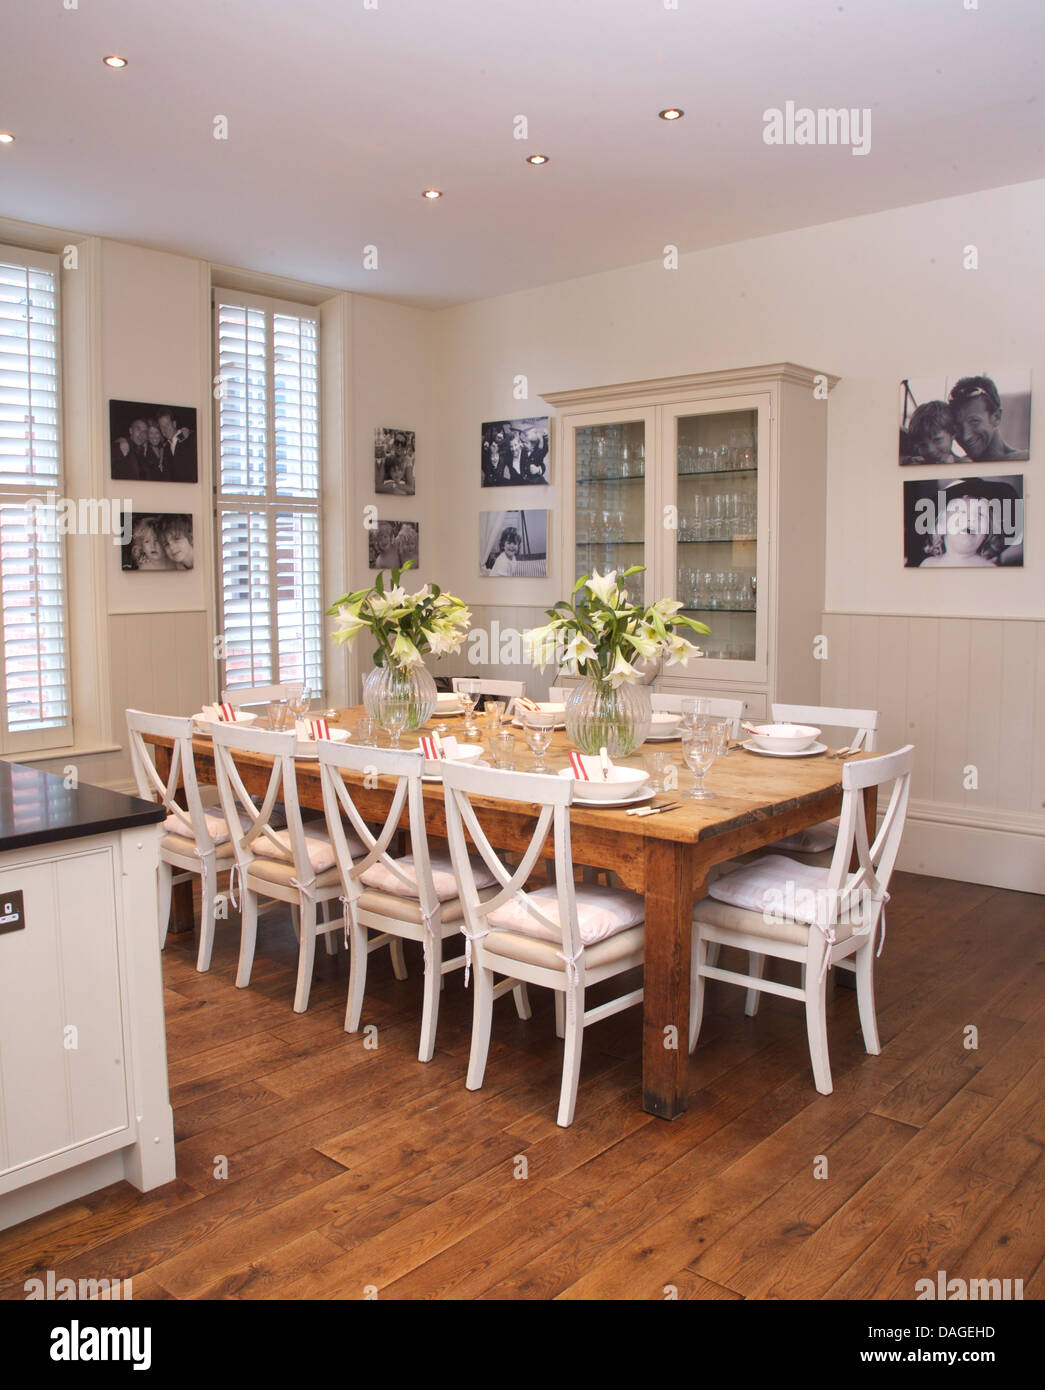 white chairs at simple wood table in modern white kitchen dining room stock photo 58140361 alamy. Black Bedroom Furniture Sets. Home Design Ideas